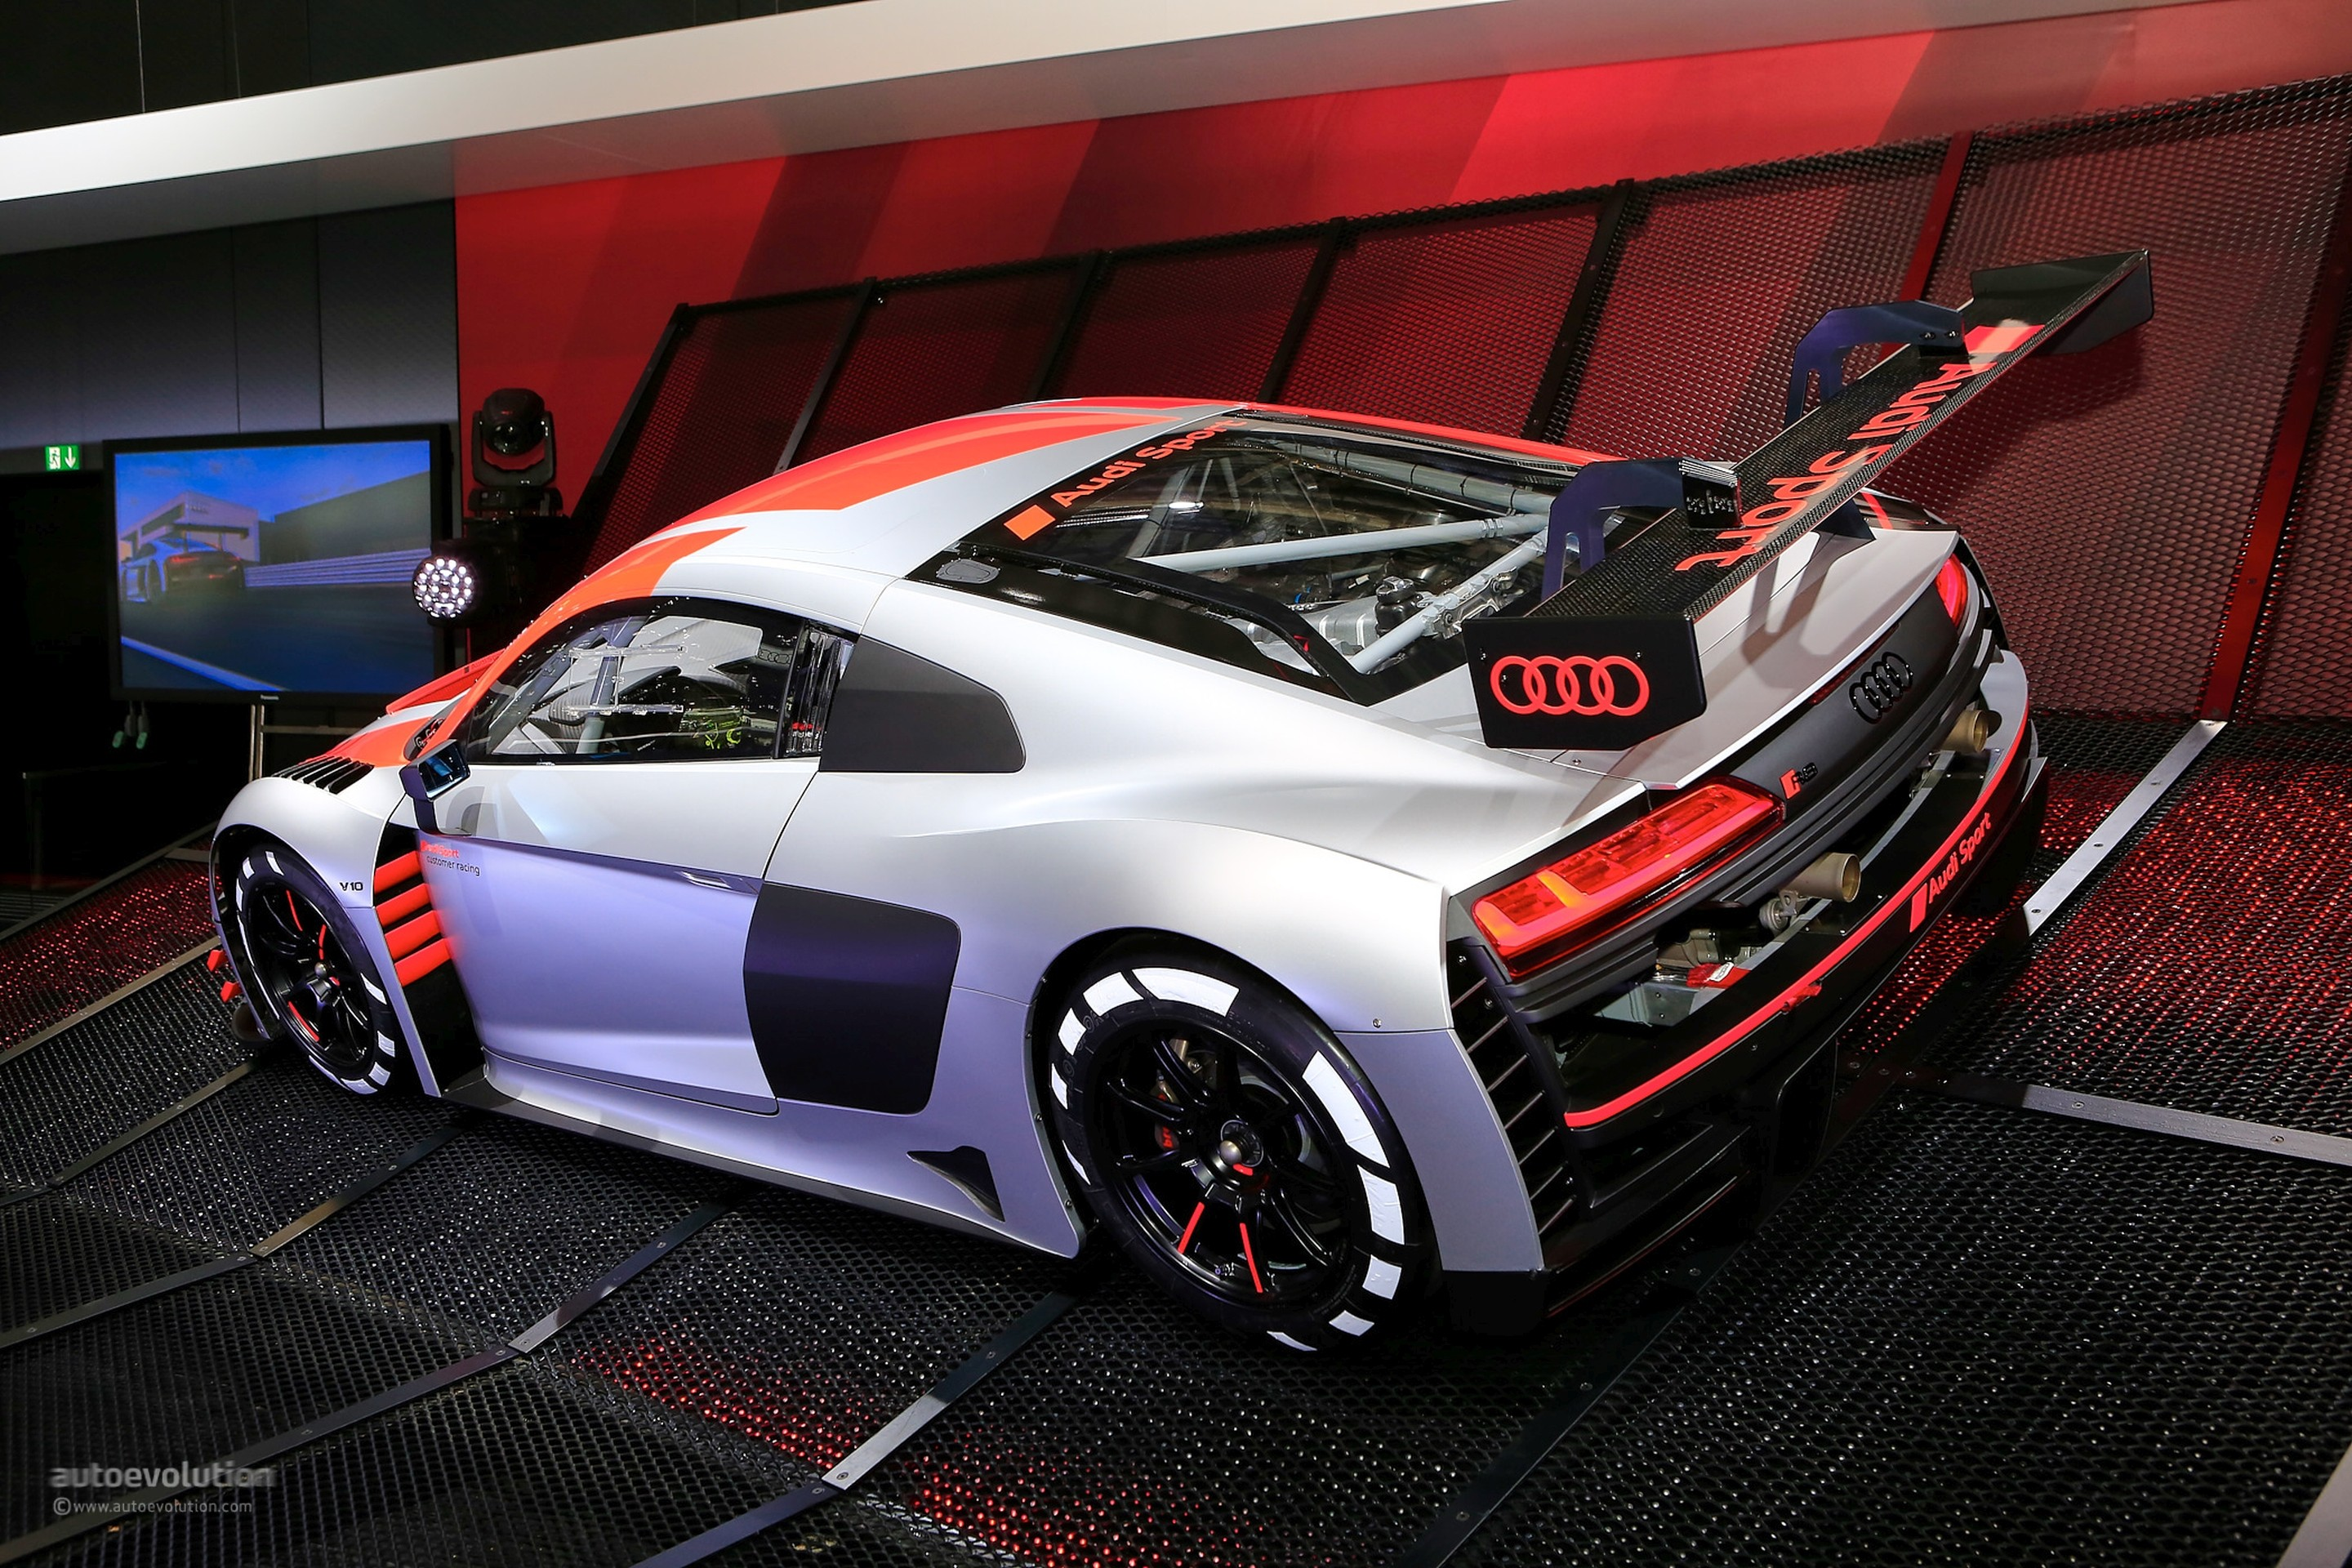 2019 Audi R8 LMS GT3 Racecar Costs $458,000, But You Can